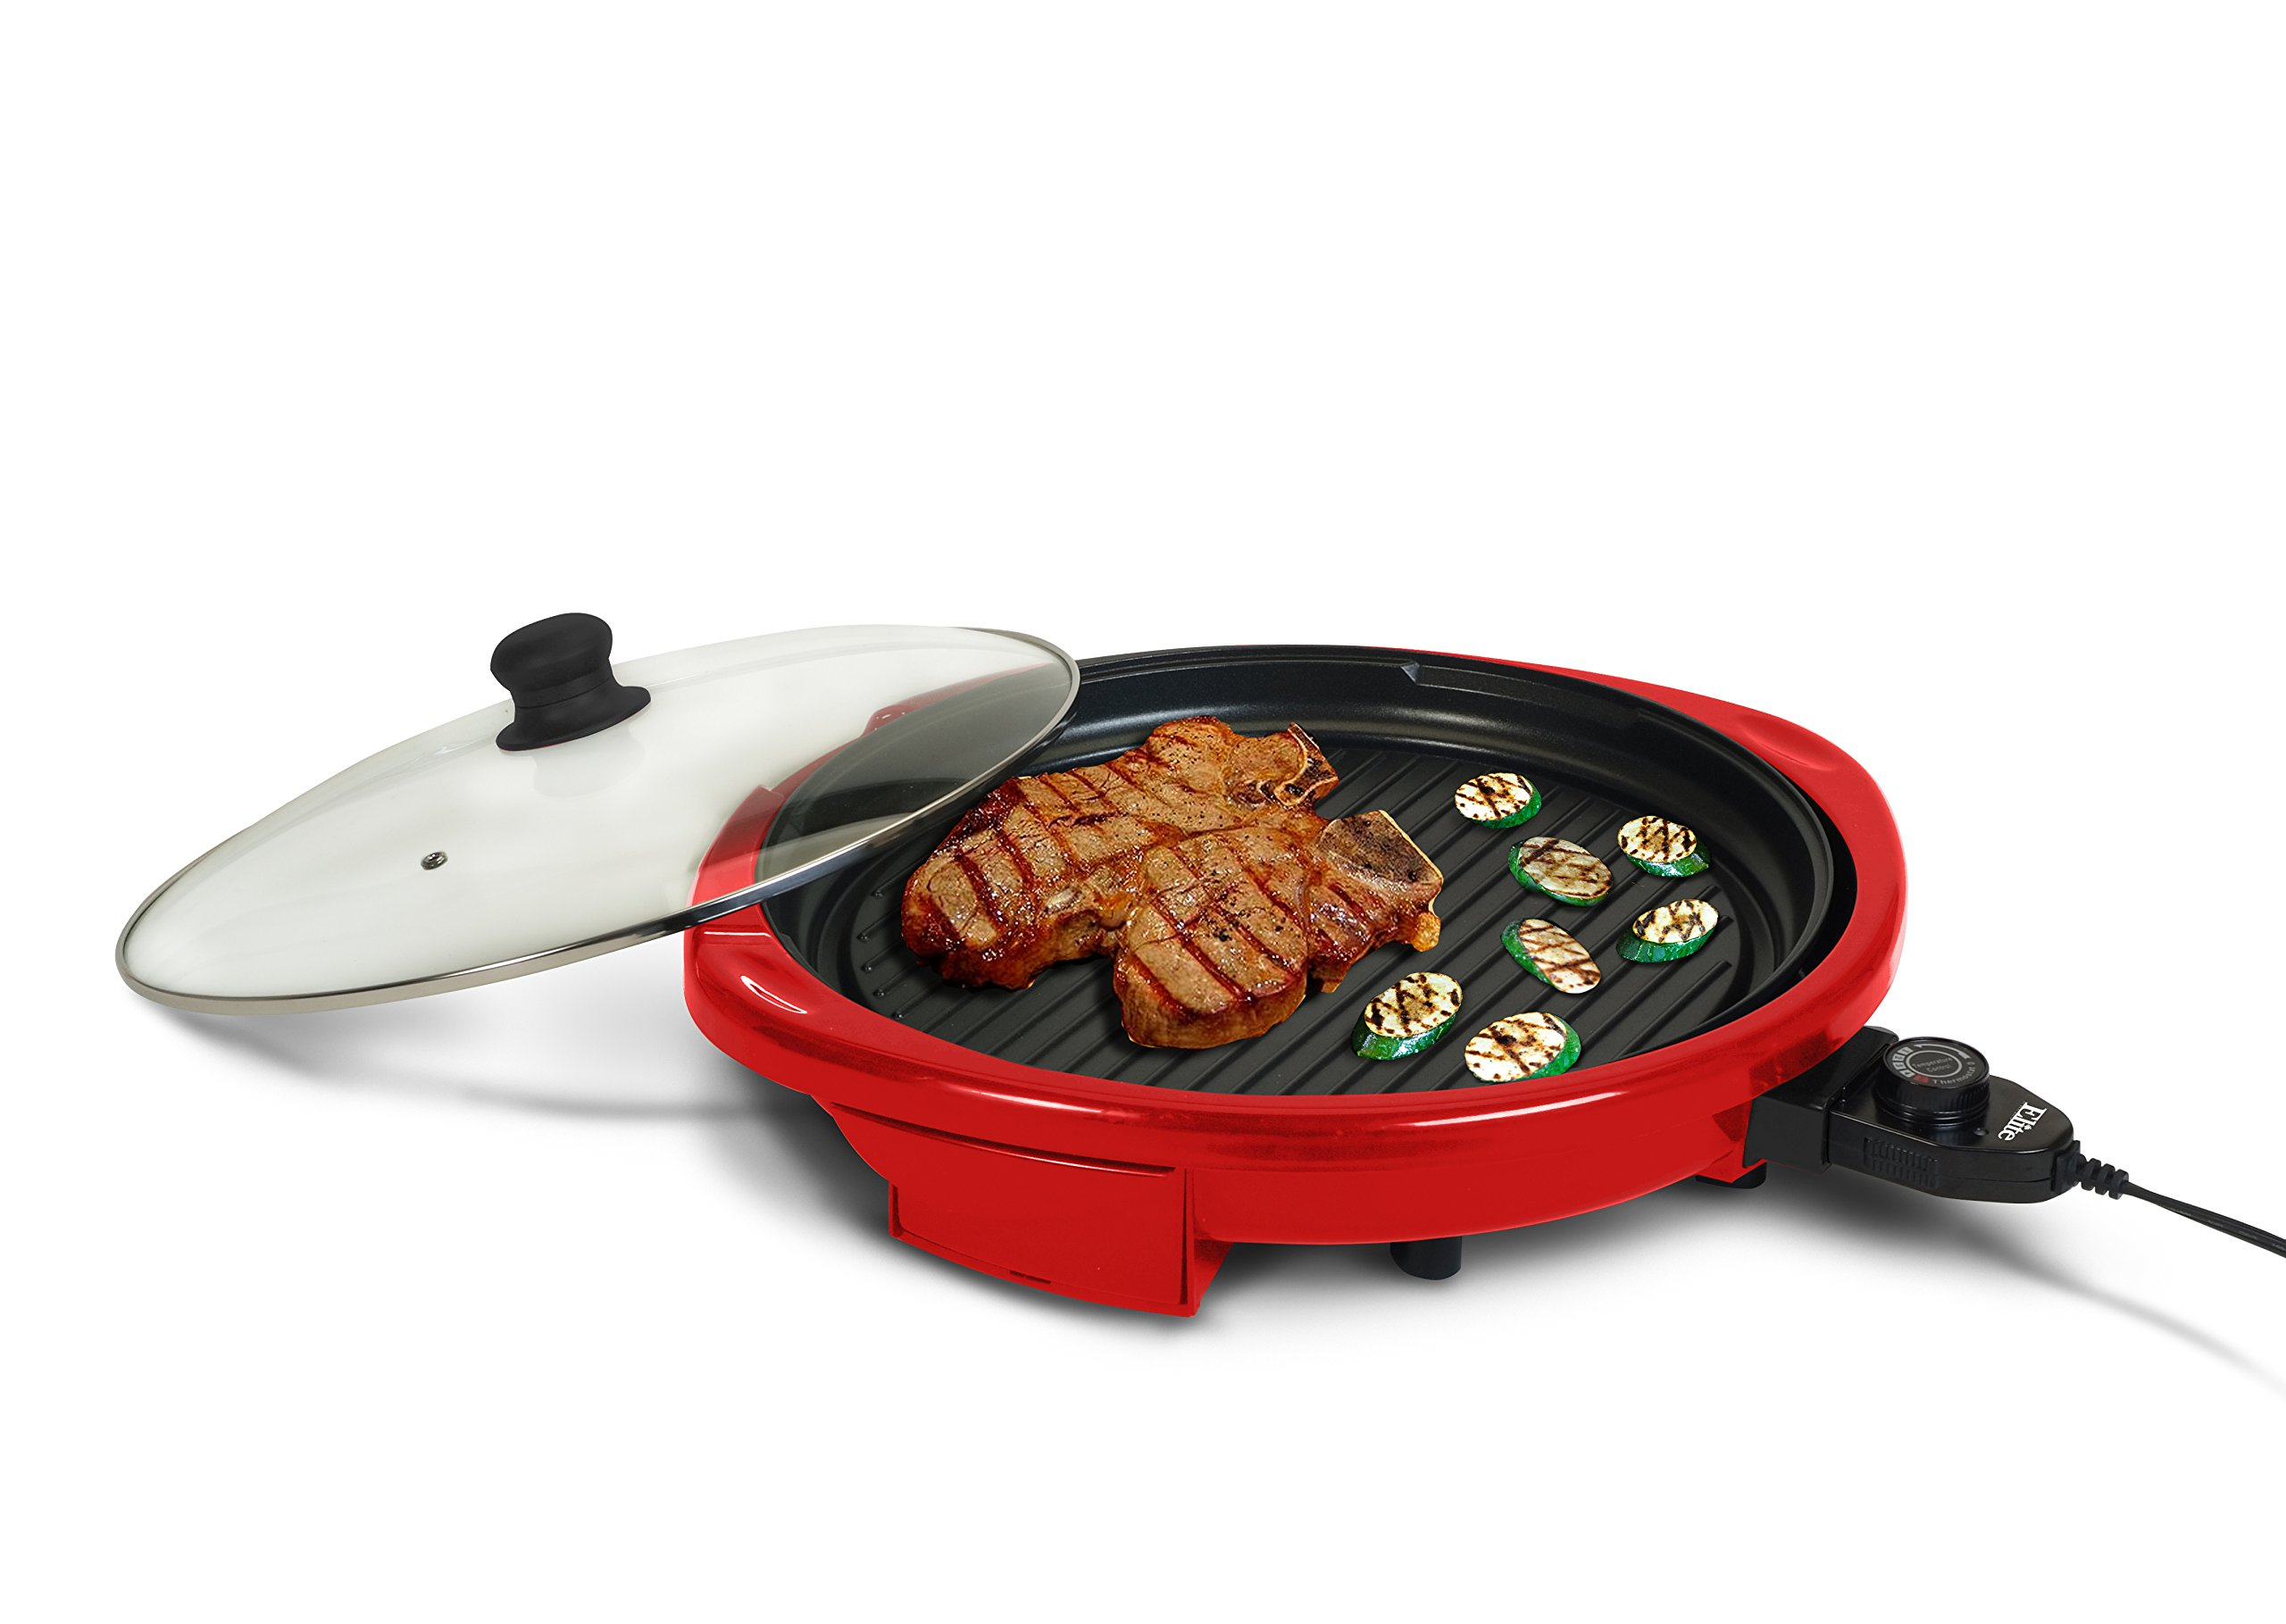 Elite Gourmet EMG-980R Indoor Grill, Red by Maxi-Matic (Image #1)